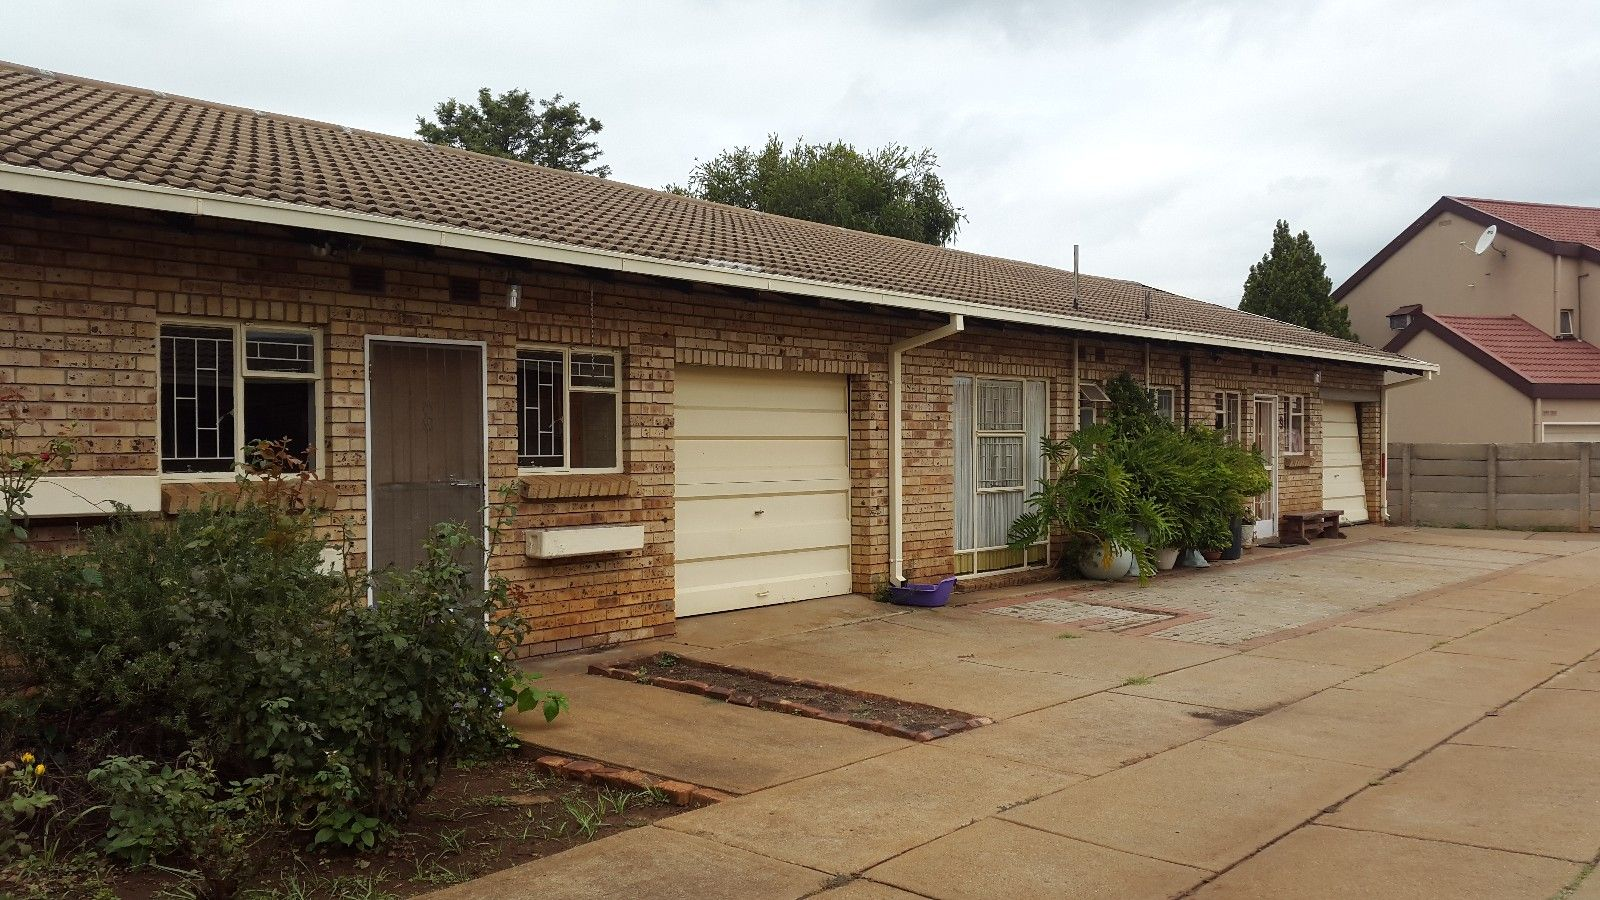 Potchefstroom Central property for sale. Ref No: 13457215. Picture no 3